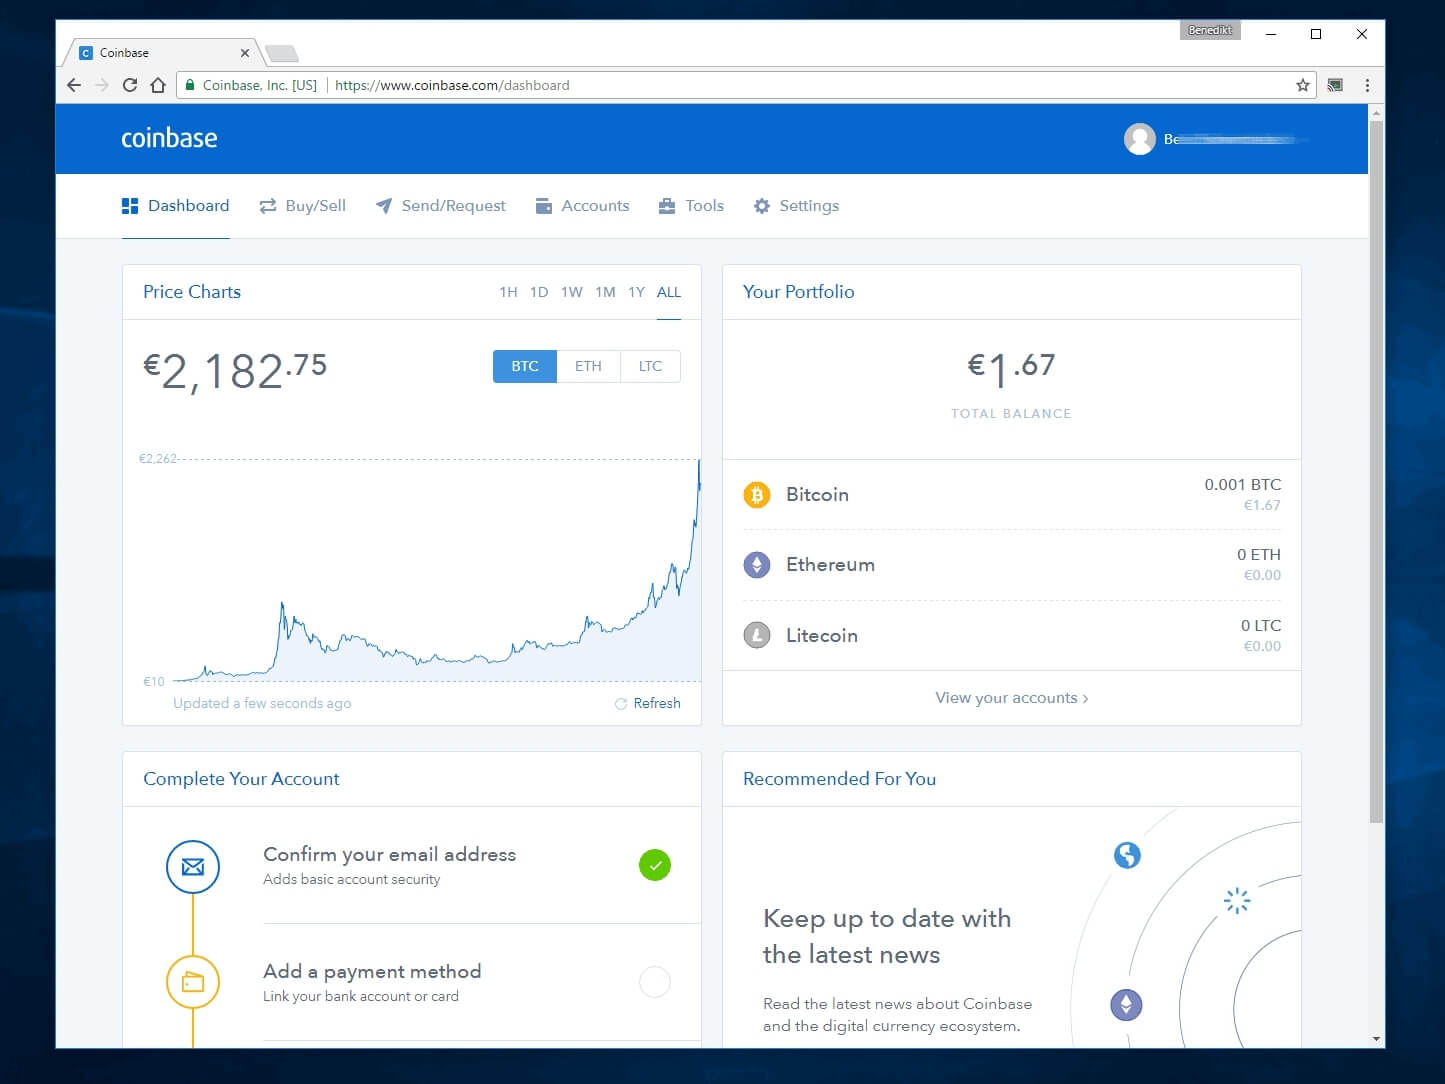 coinbase earn dashboard